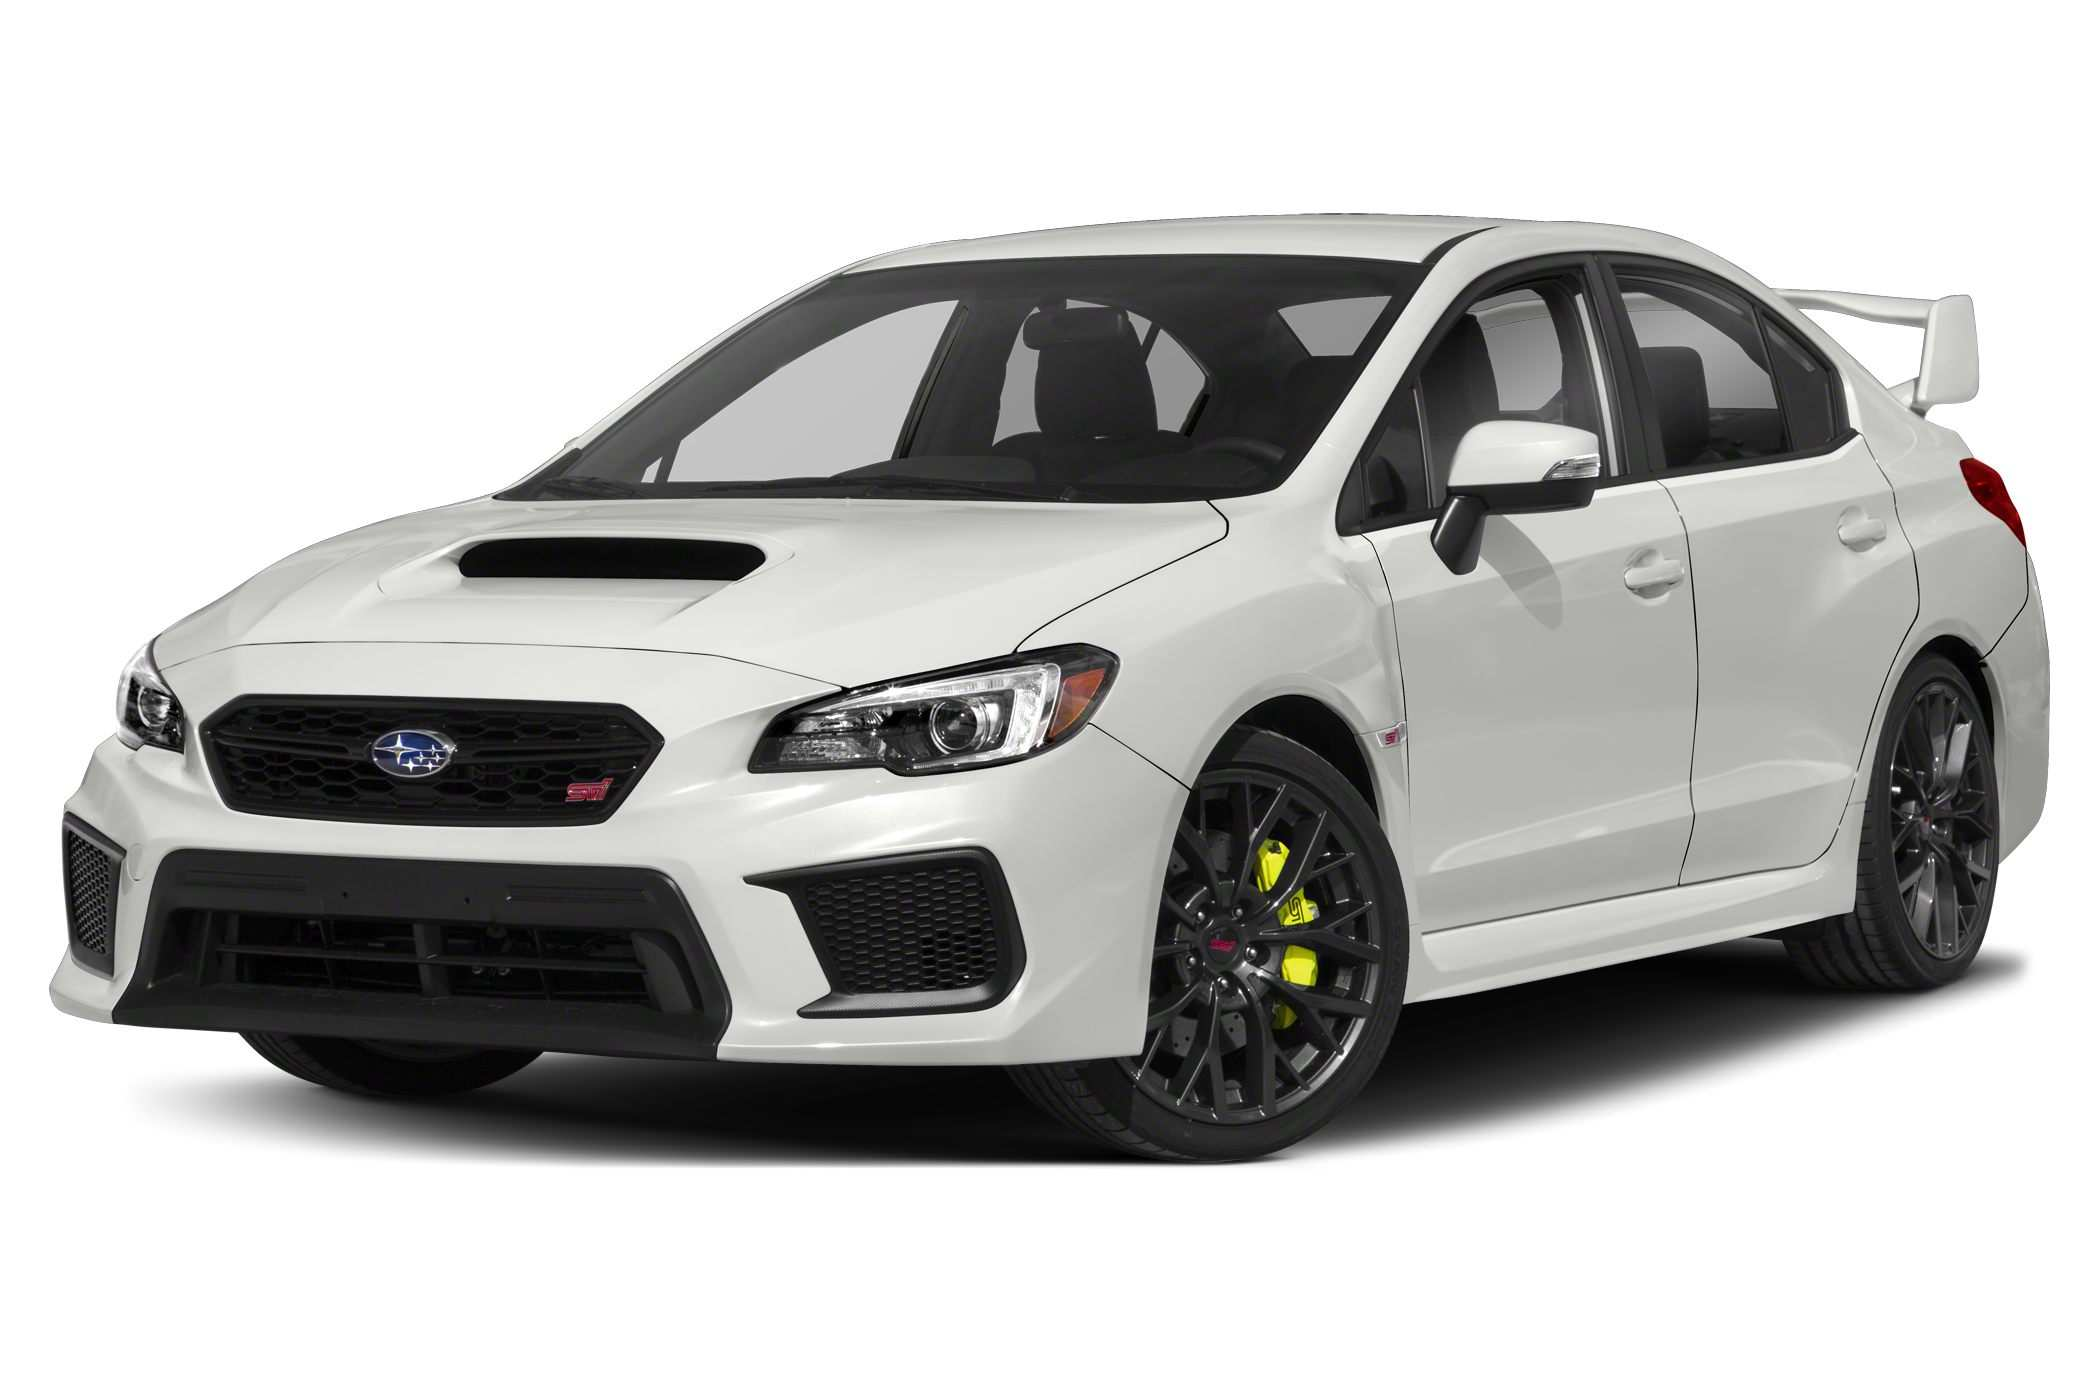 27 Great 2019 Subaru Impreza Wrx Images for 2019 Subaru Impreza Wrx